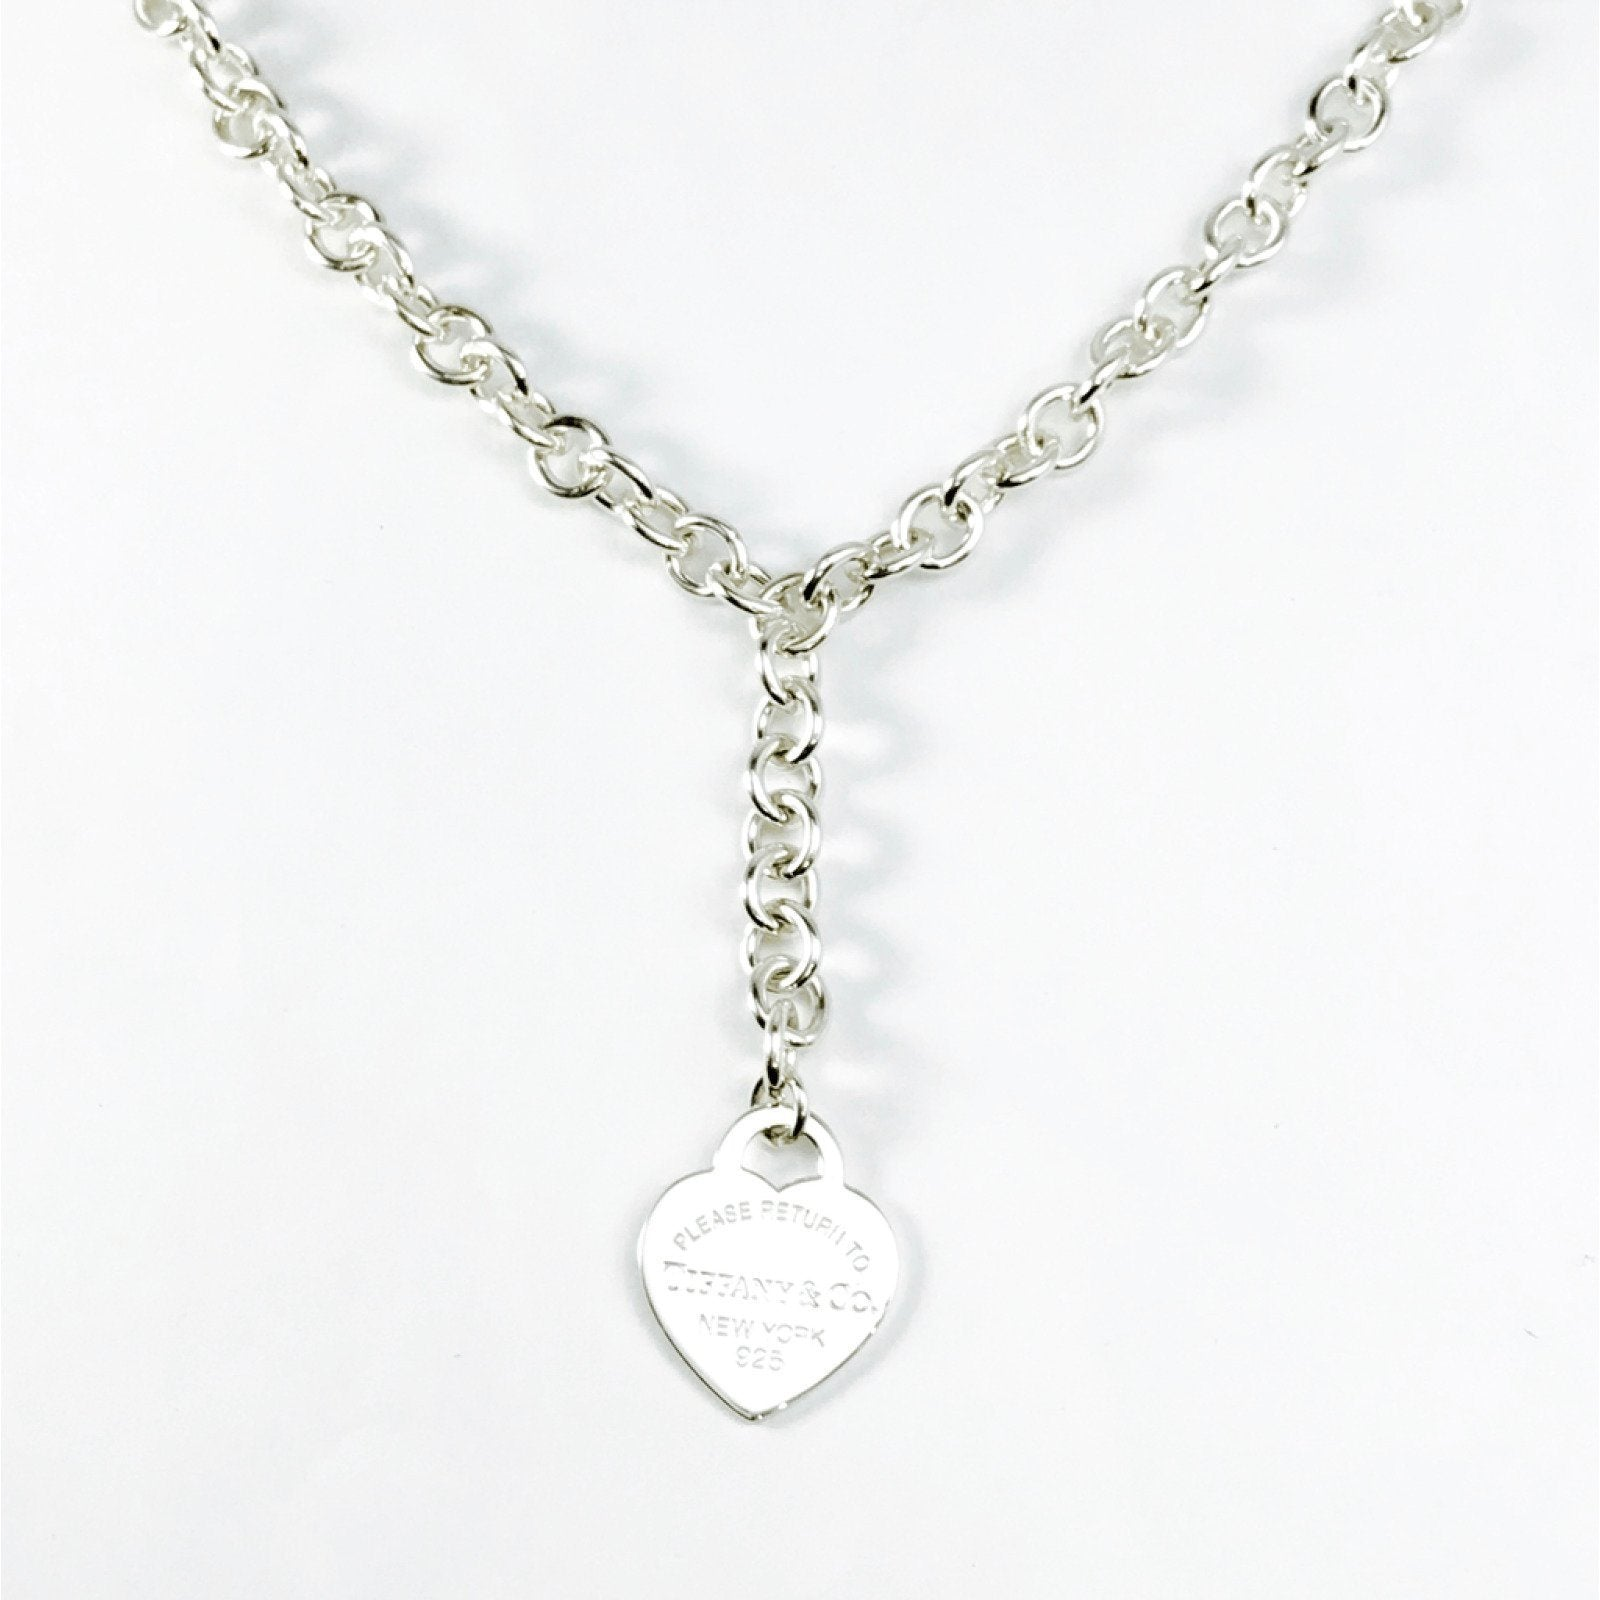 fdc5d3085 Tiffany & Co. Return to Tiffany Heart Tag Necklace– Oliver Jewellery